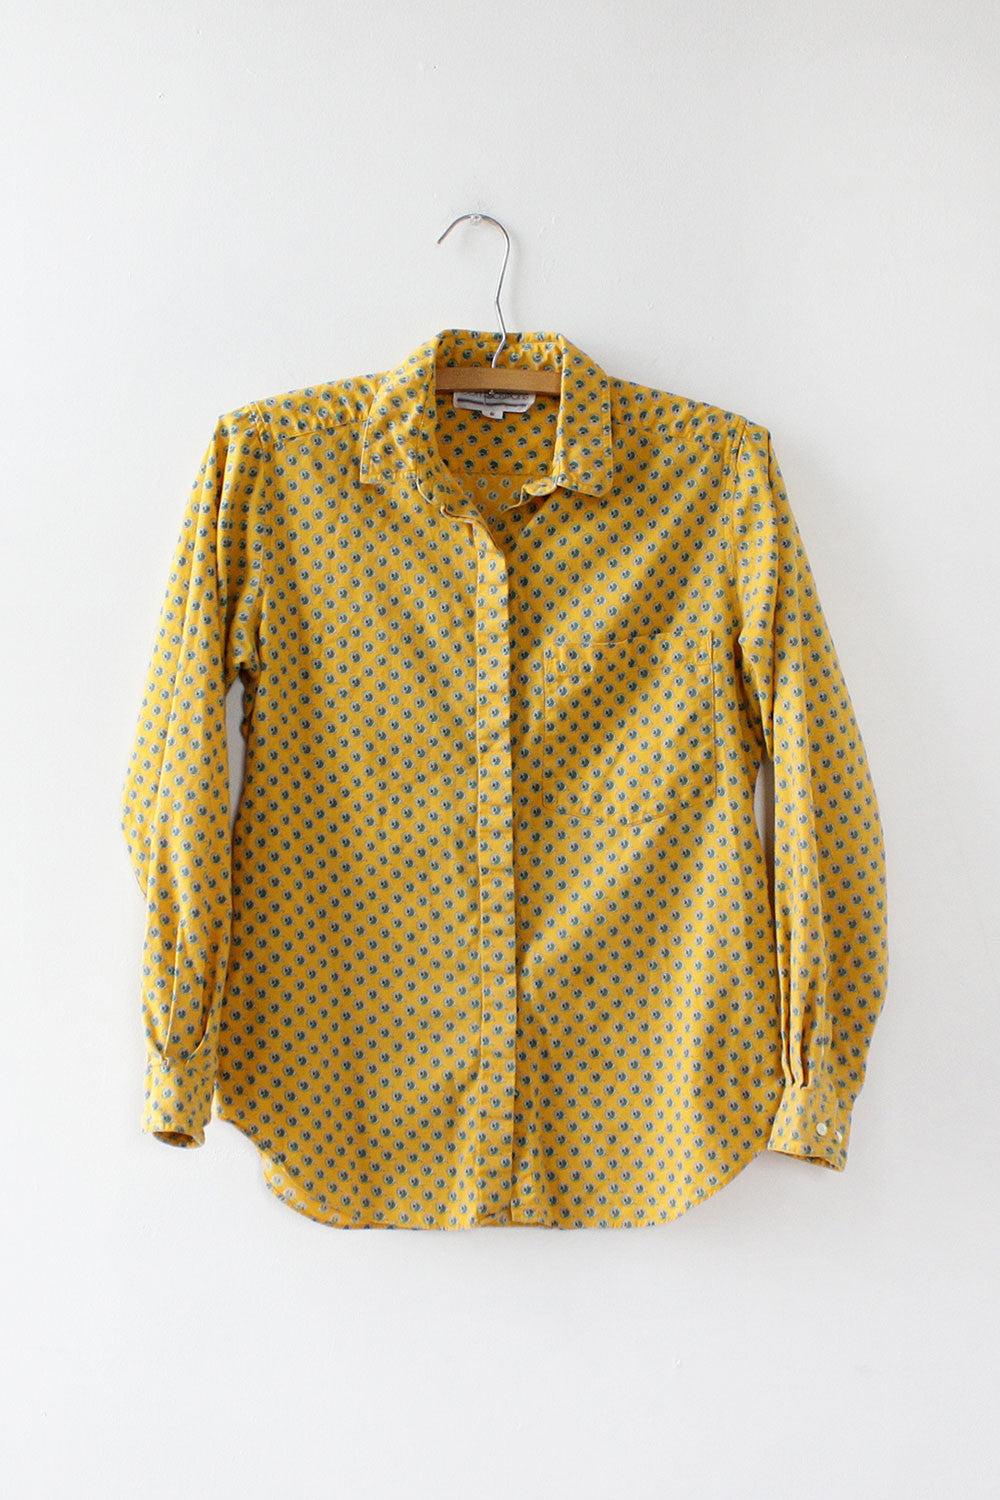 The Dandelion Blouse S